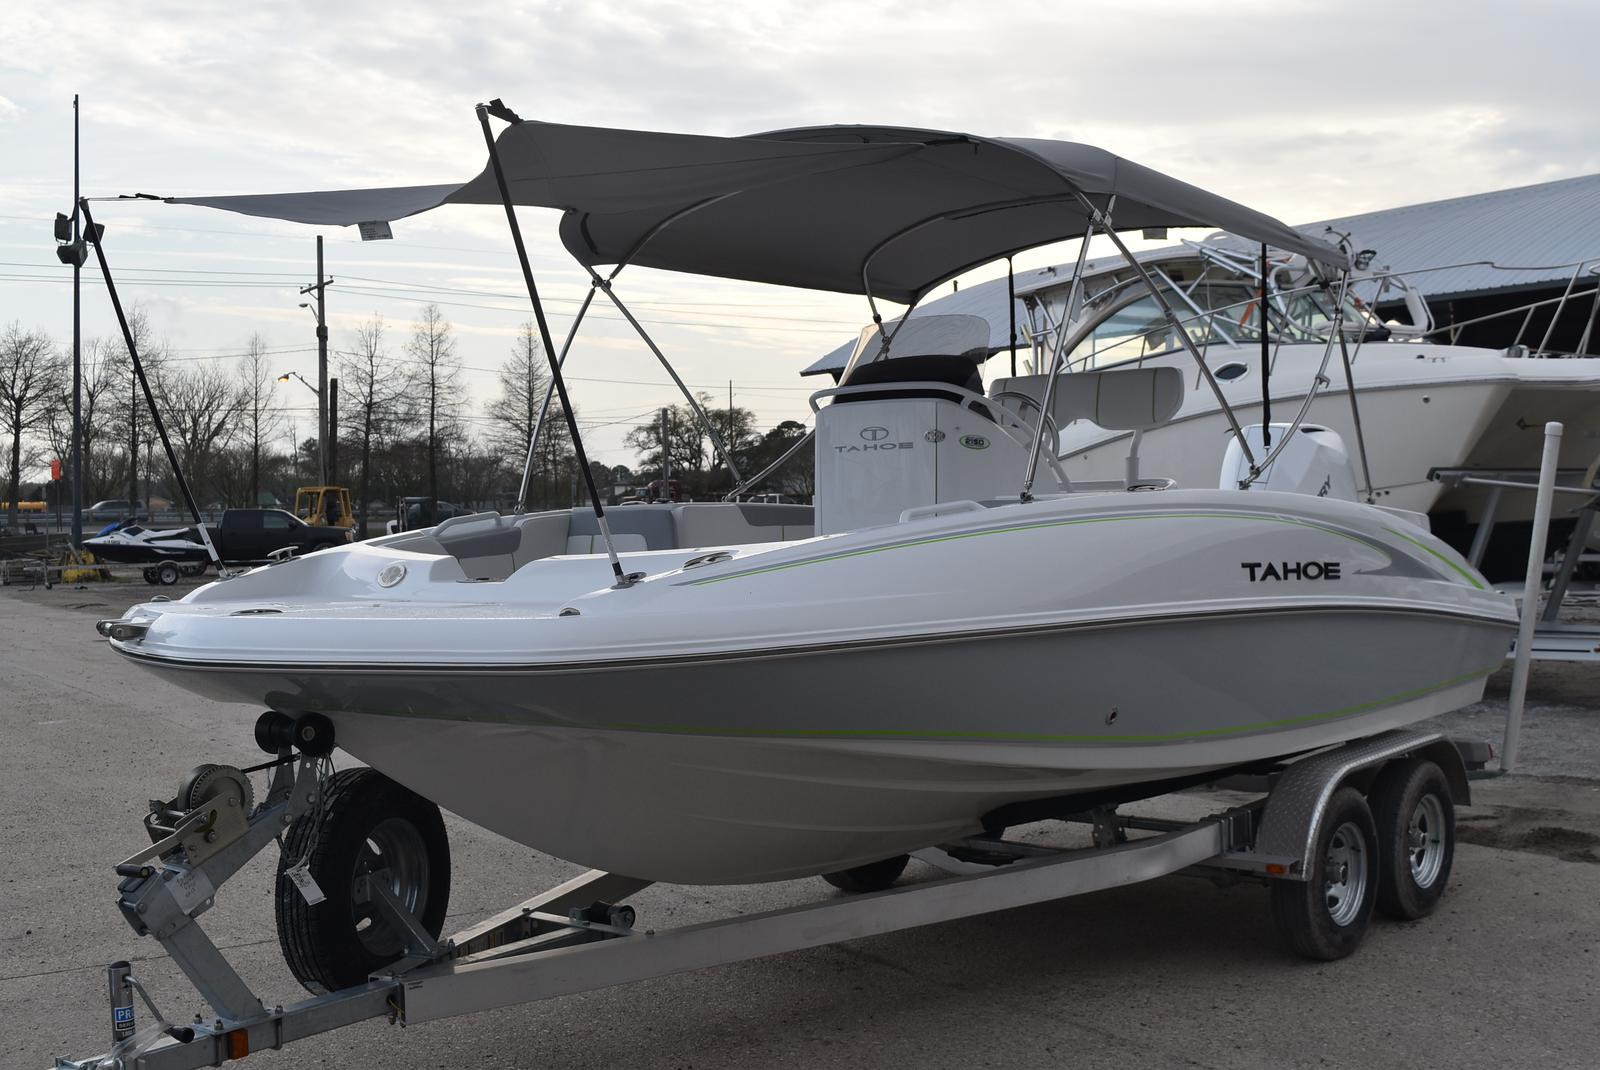 2021 Tahoe boat for sale, model of the boat is 2150cc & Image # 12 of 17